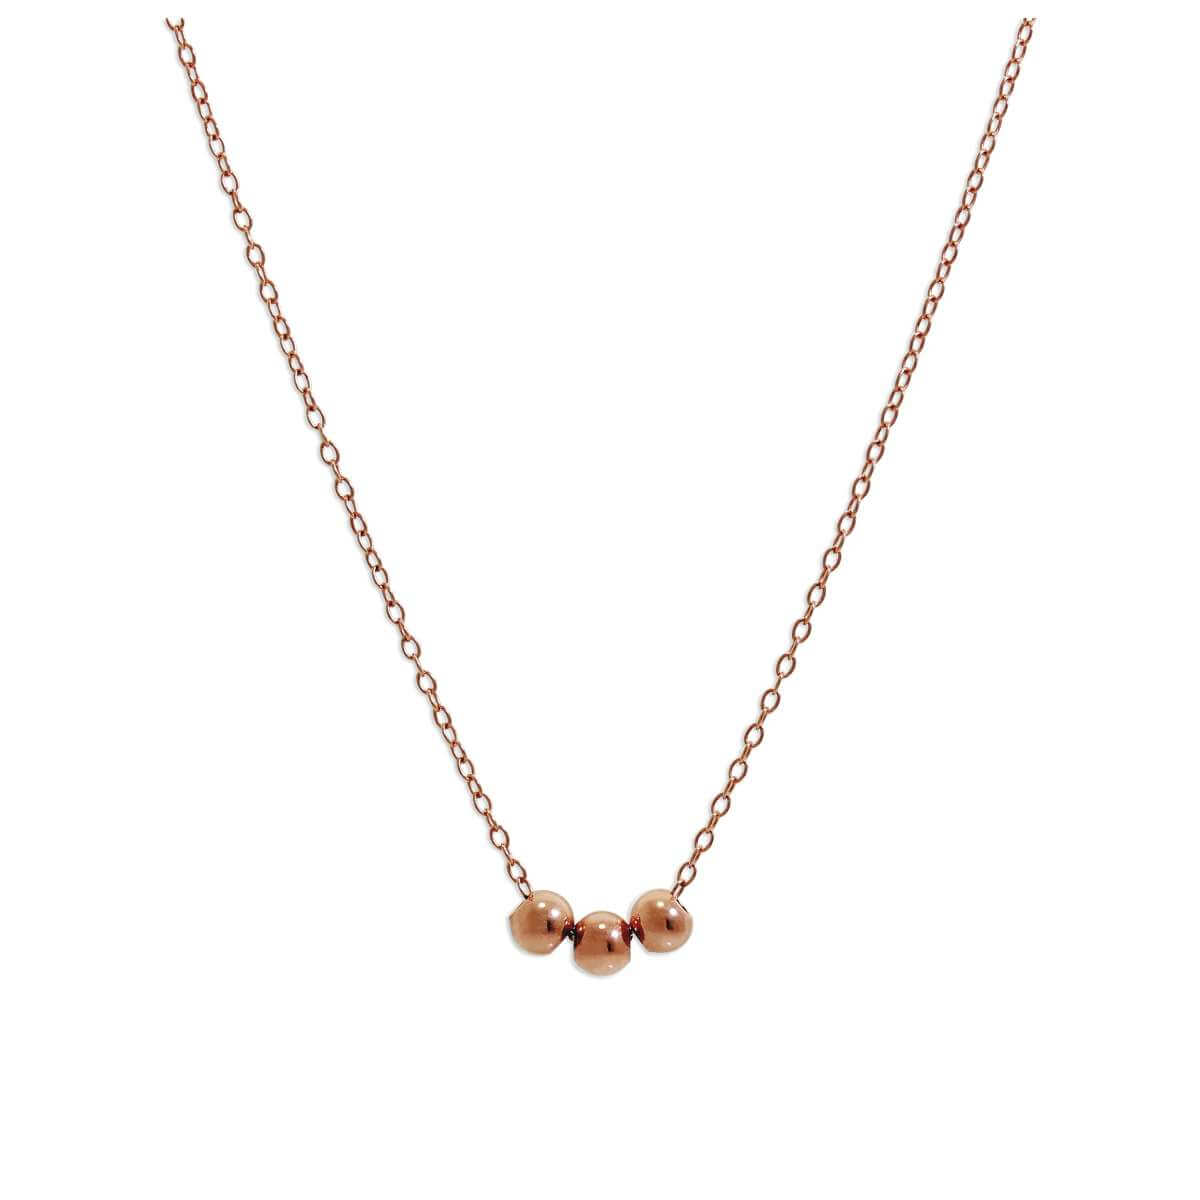 Rose Gold Plated Sterling Silver Triple Sliding Ball Necklace - 18 Inches